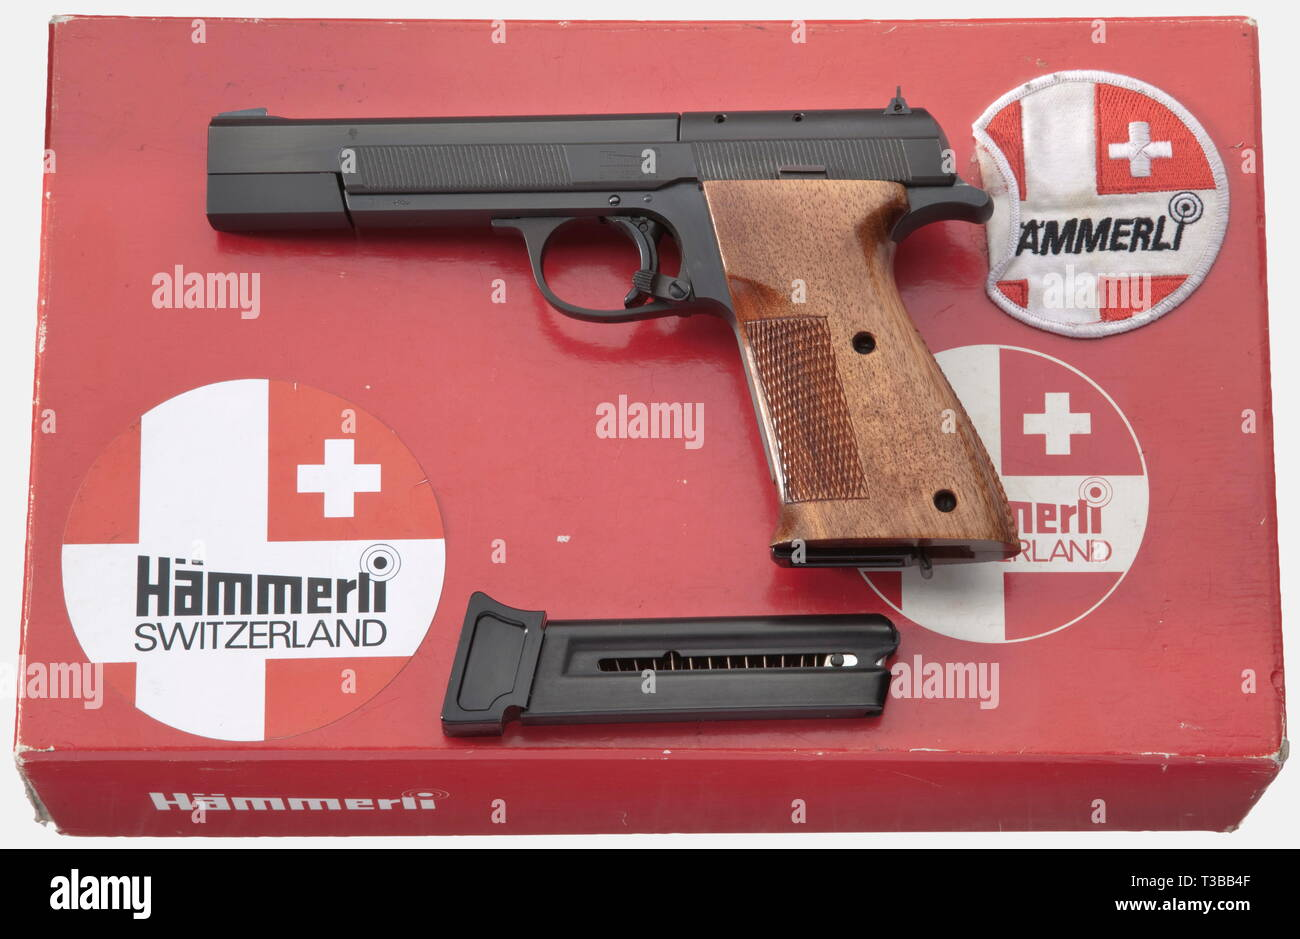 Tir sportif, pistolets, Suisse, Hämmerli 208, calibre .22, tir sportif, pistolets, Suisse, Hämmerli 212, calibre .22, Additional-Rights Clearance-Info-Not-Available- Photo Stock